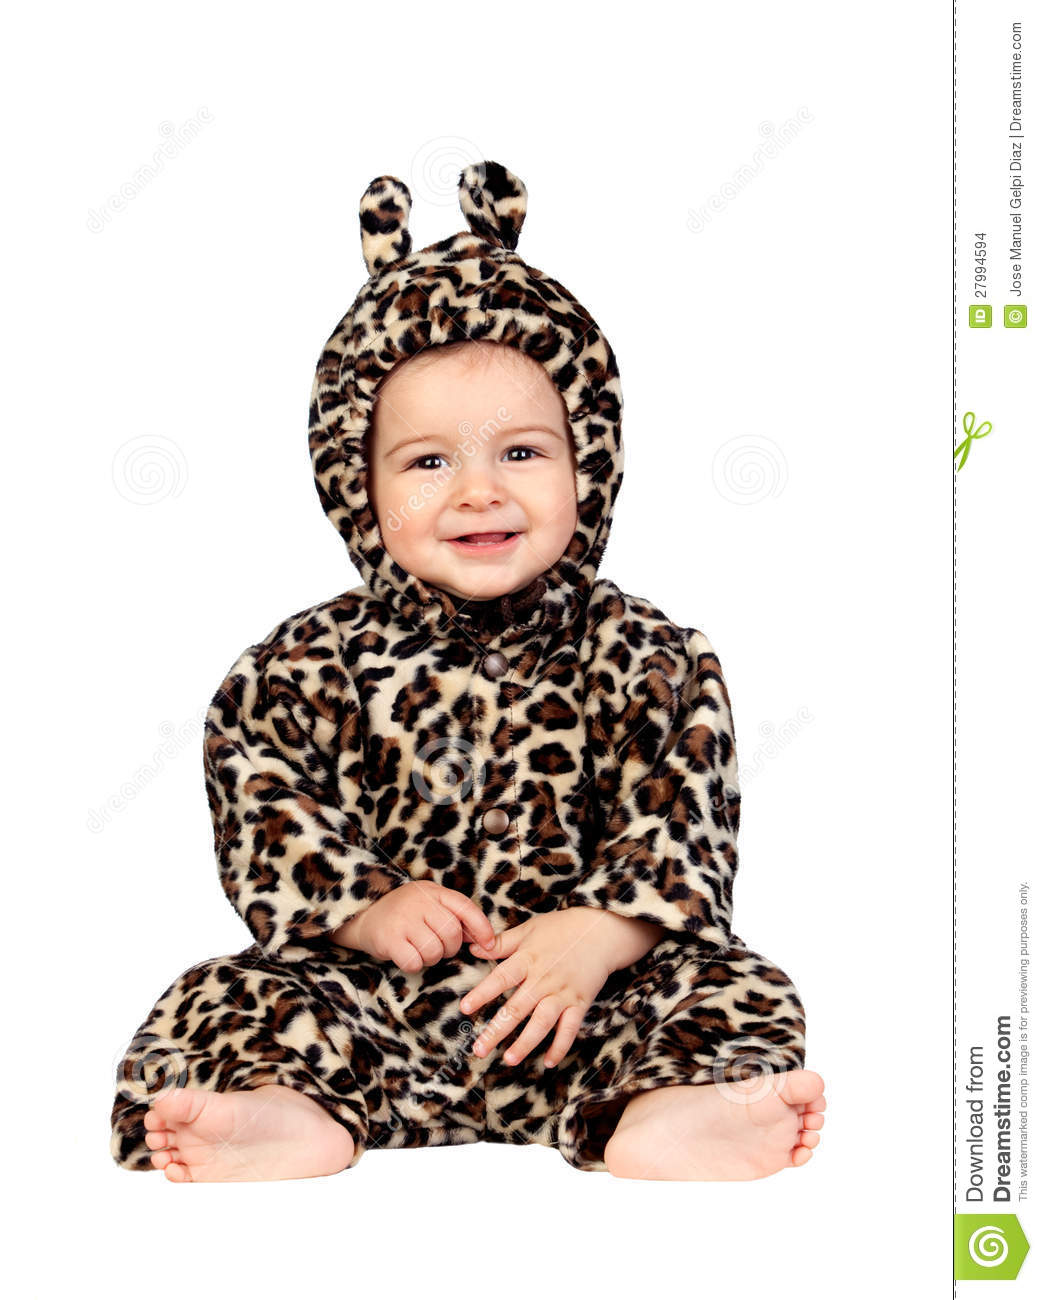 3pcs newborn baby s clothes long sleeve leopard romper pants headwear outfits cute cotton suits glosun newborn baby s long sleeve heart romper tops leopard leggings pants 2pcs outfits meilaier winter newborn romper animal leopard toddler baby onesie outfits suit ume in on alibaba baby leopard outfit glosun newborn baby s long sleeve heart romper [ ].